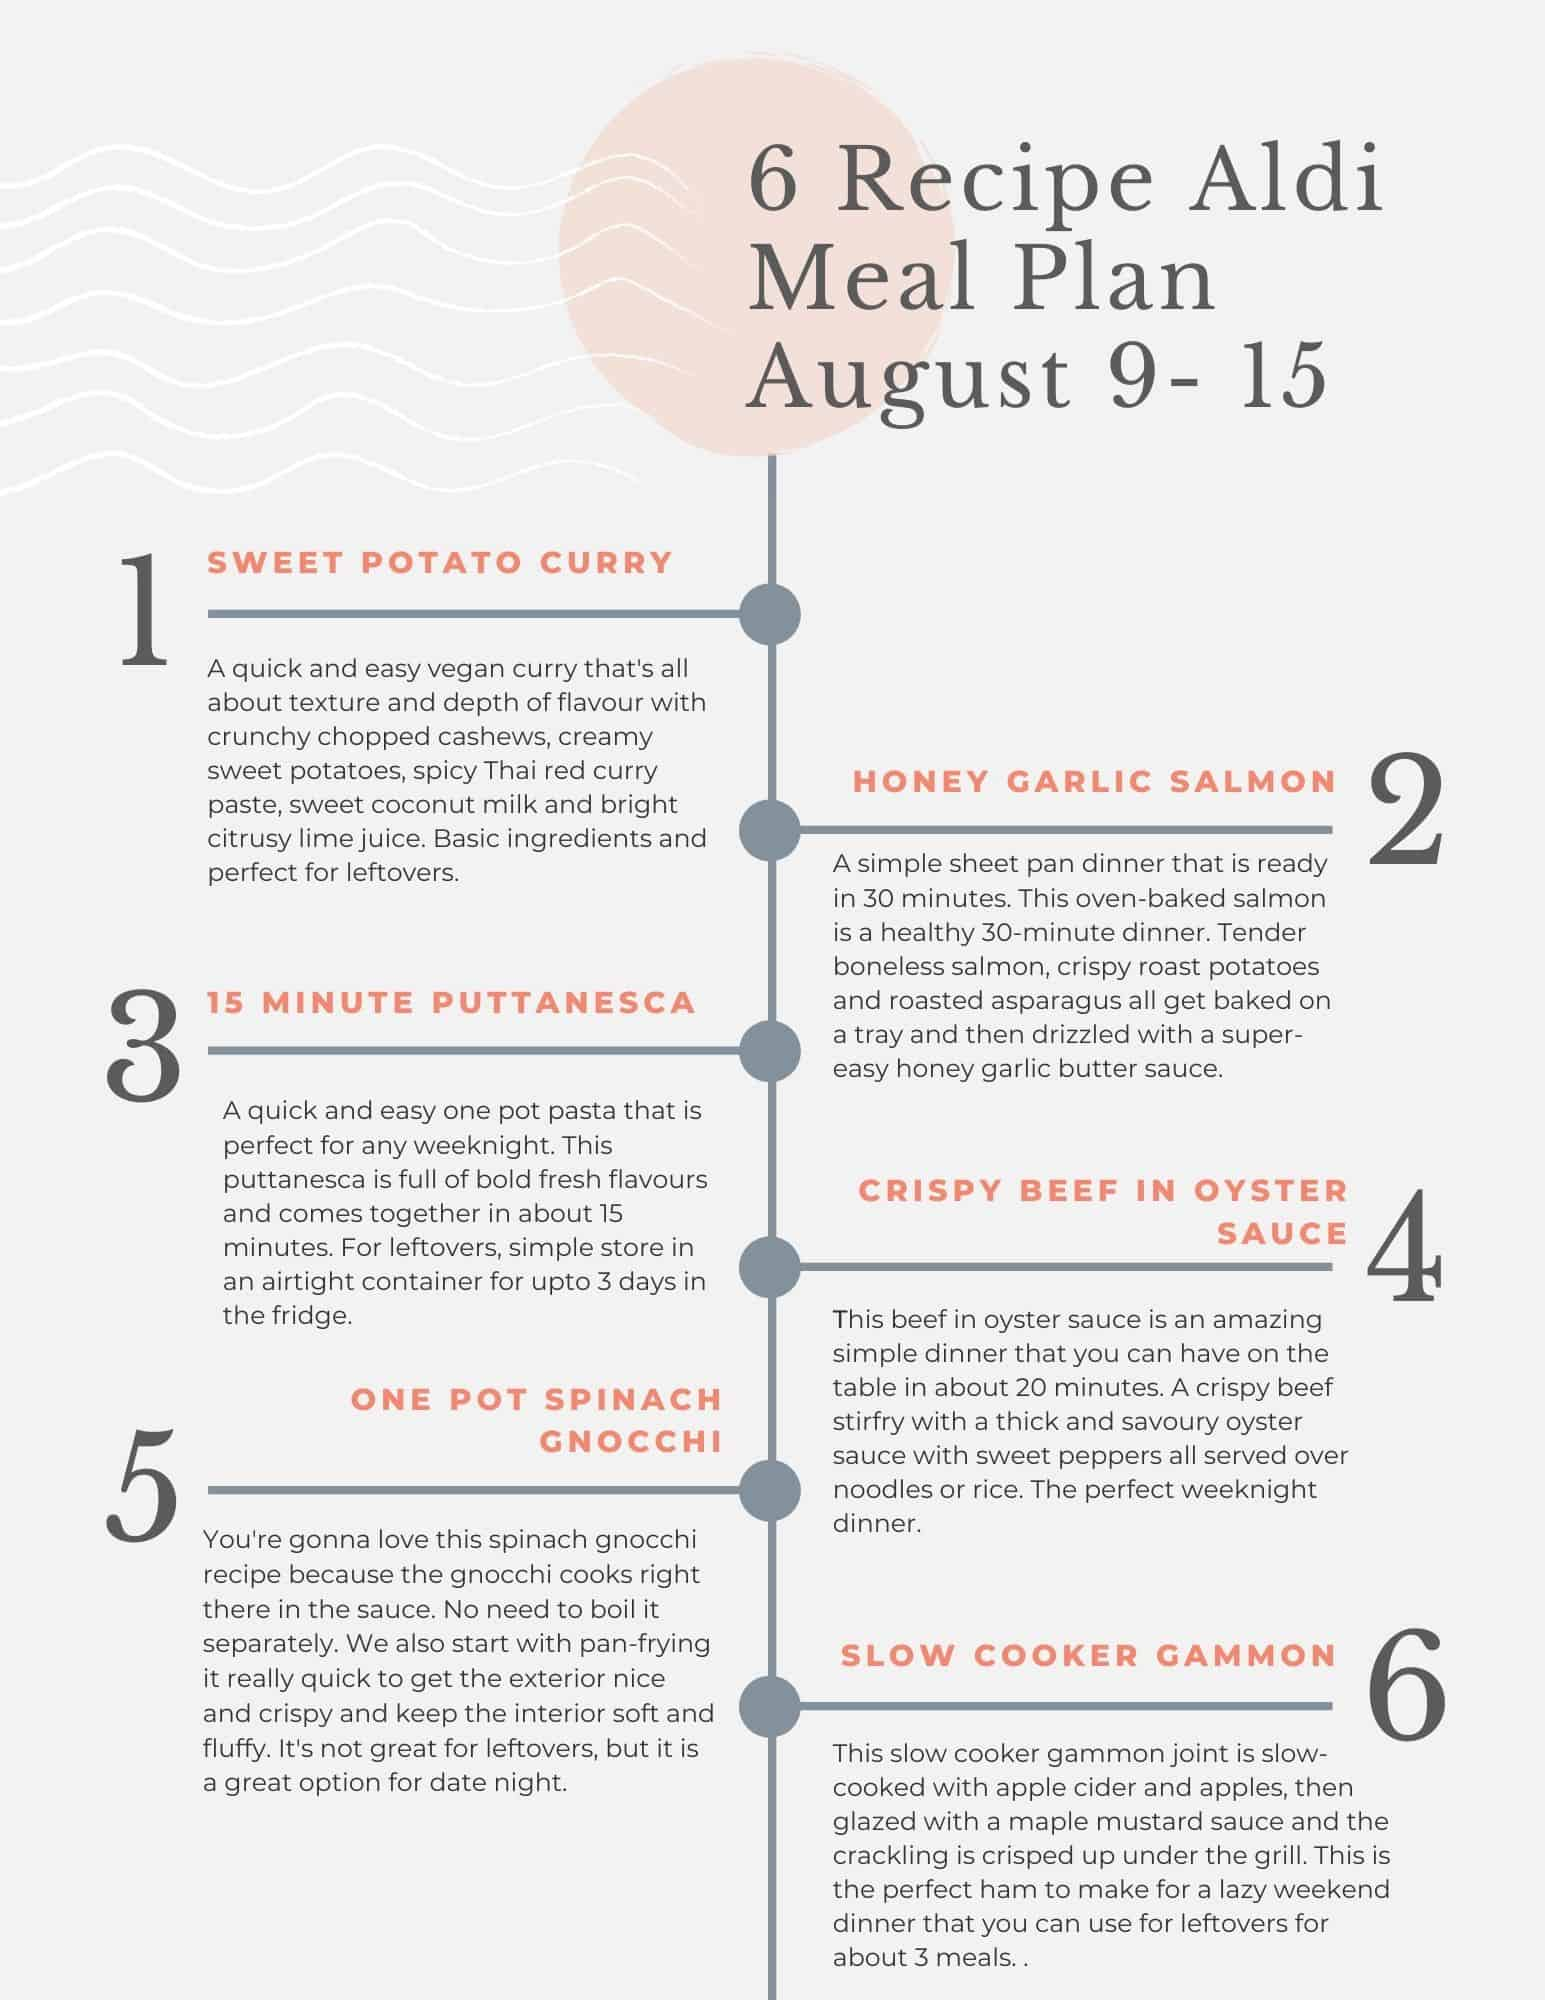 Aldi budget meal plan tip sheet for healthy vegetarian and slow cooker recipes.